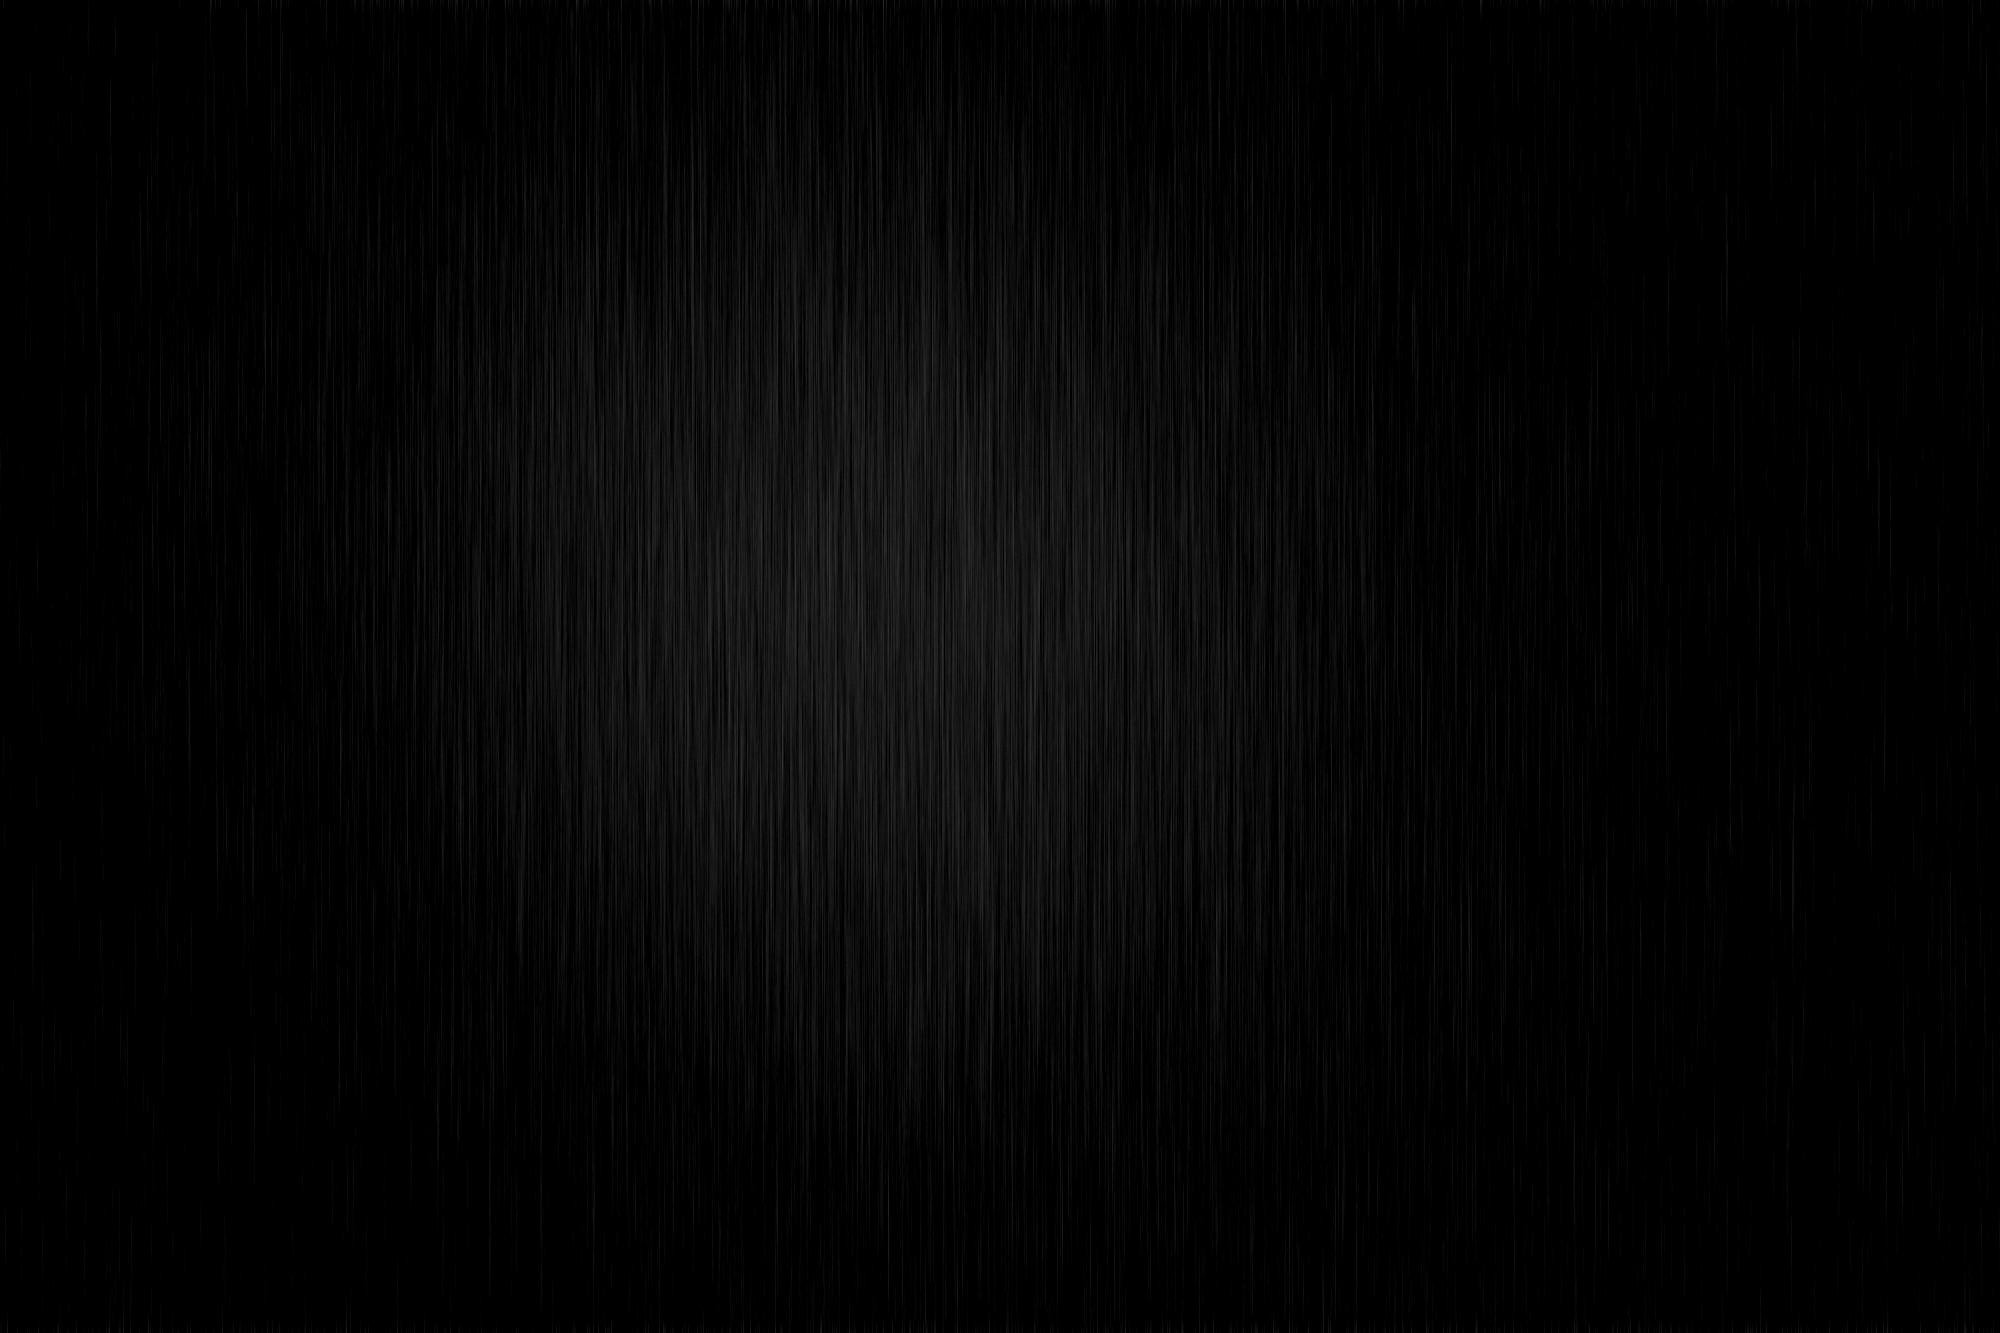 Plain black wallpaper download free stunning full hd for Black wallpaper full hd